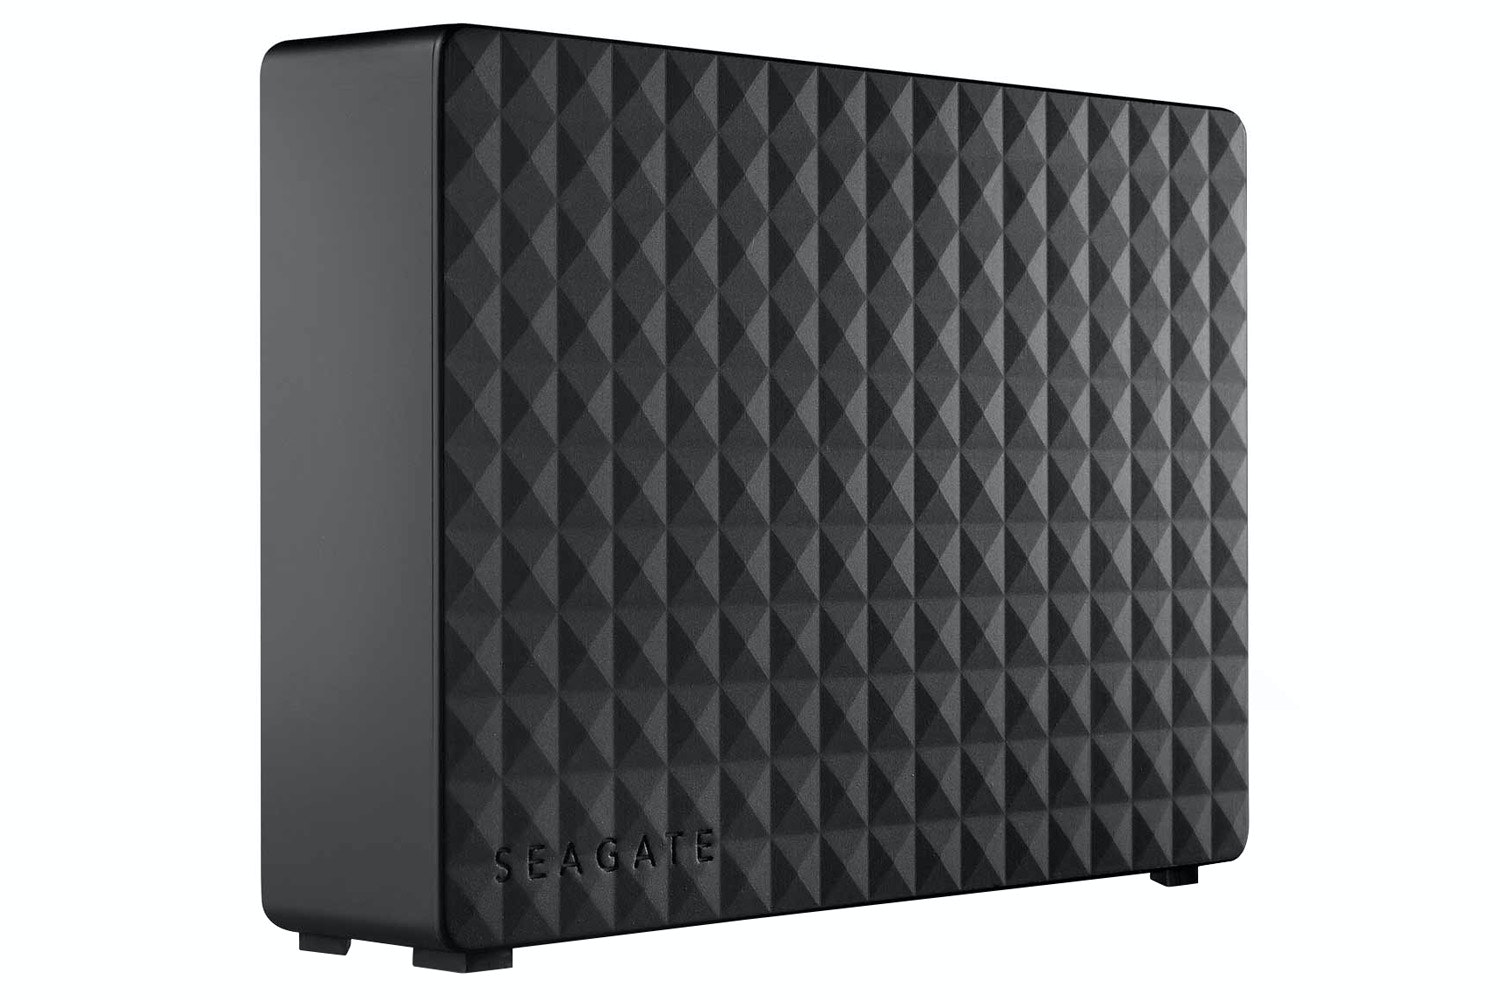 Seagate Expansion Desktop Hard Drive | 3TB